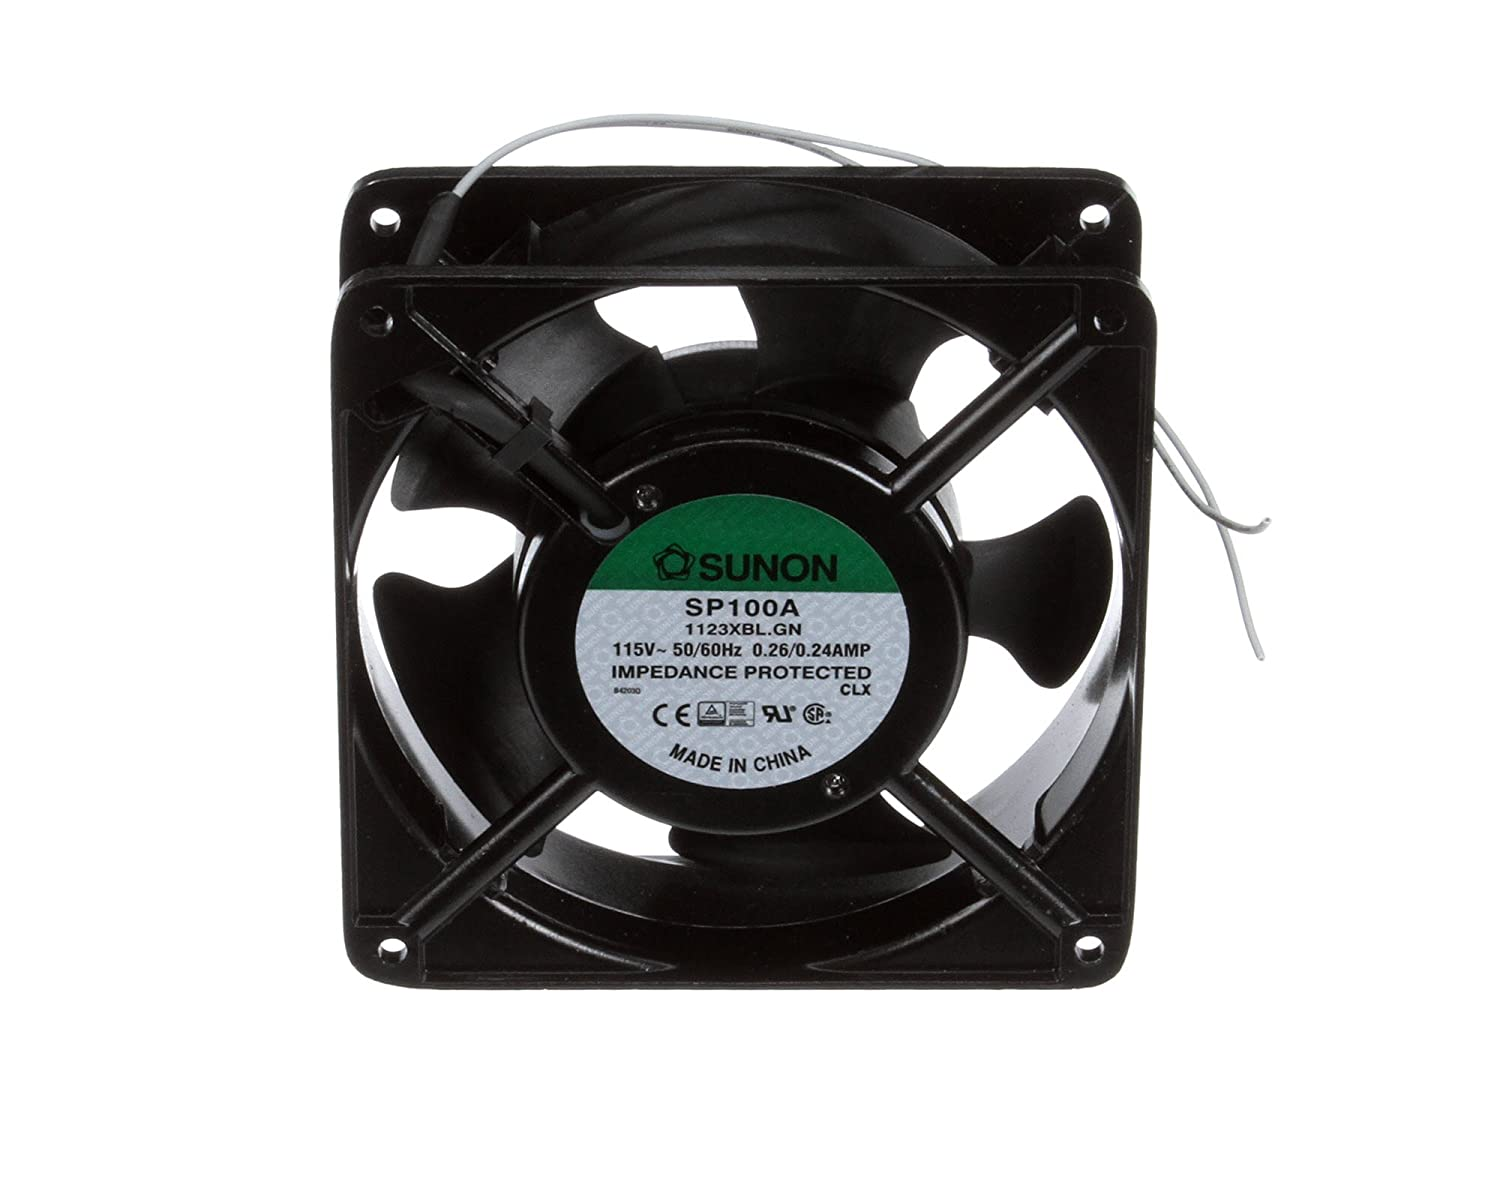 Waring 029773 Replacement Fan Assembly for Cts1000, Cts10006, and Cts1000C Conveyor Toasters